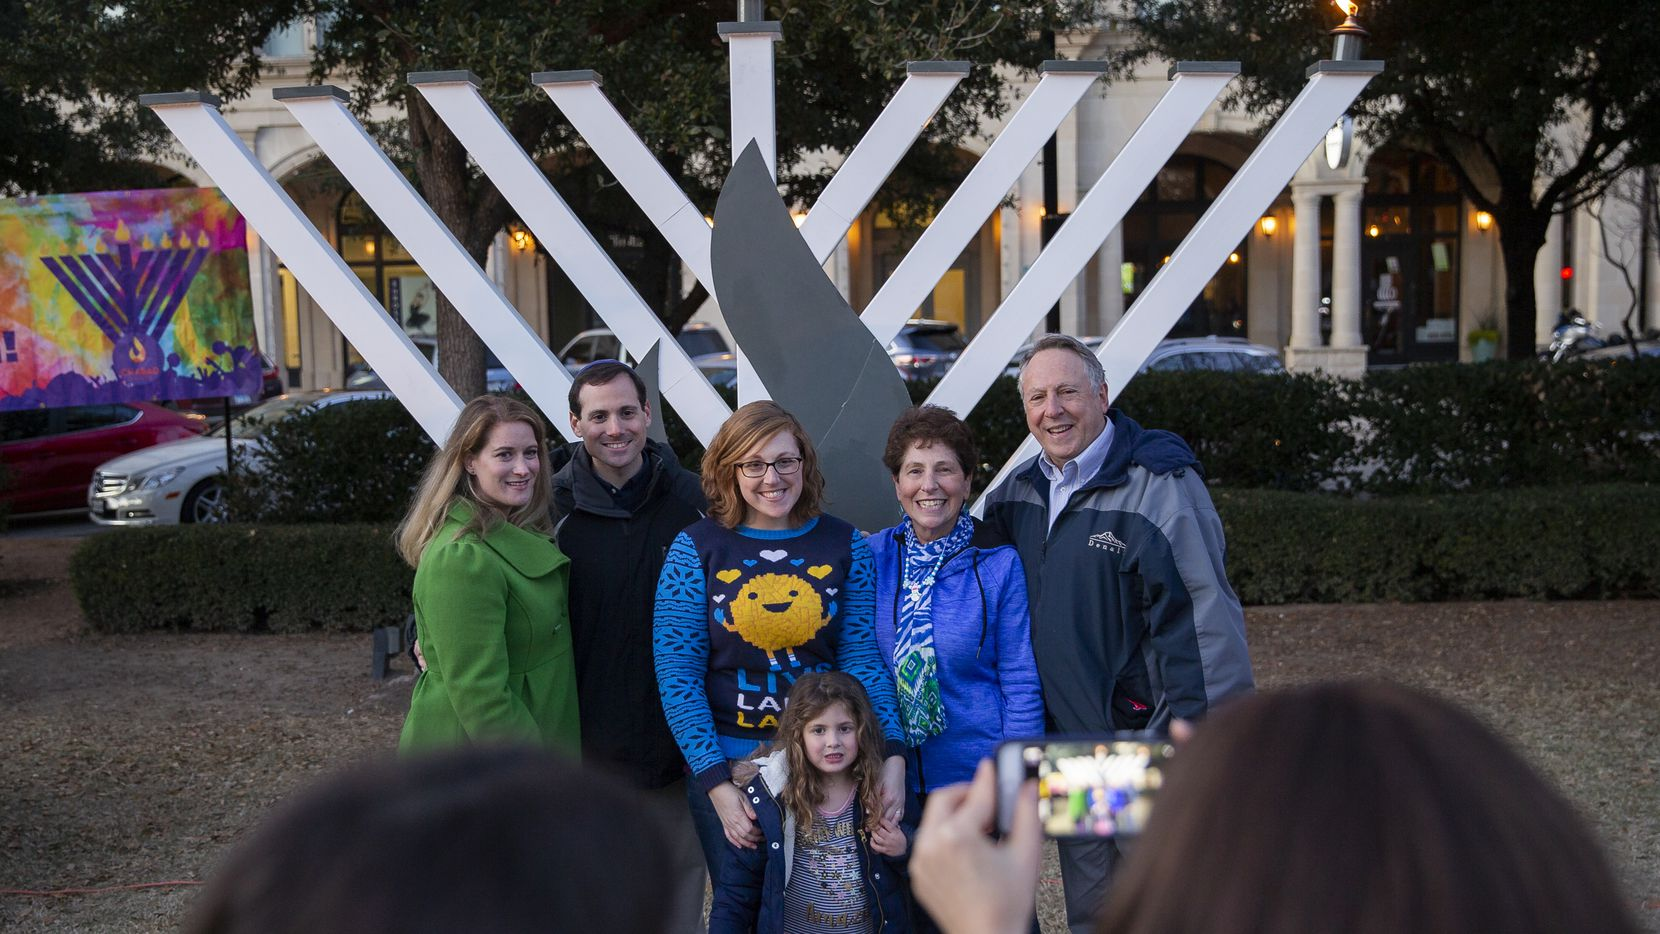 Families take a photo at the Chabad of Frisco's 2019 menorah lighting. This year's event, honoring health workers, includes COVID-19 precautions such as social distancing.